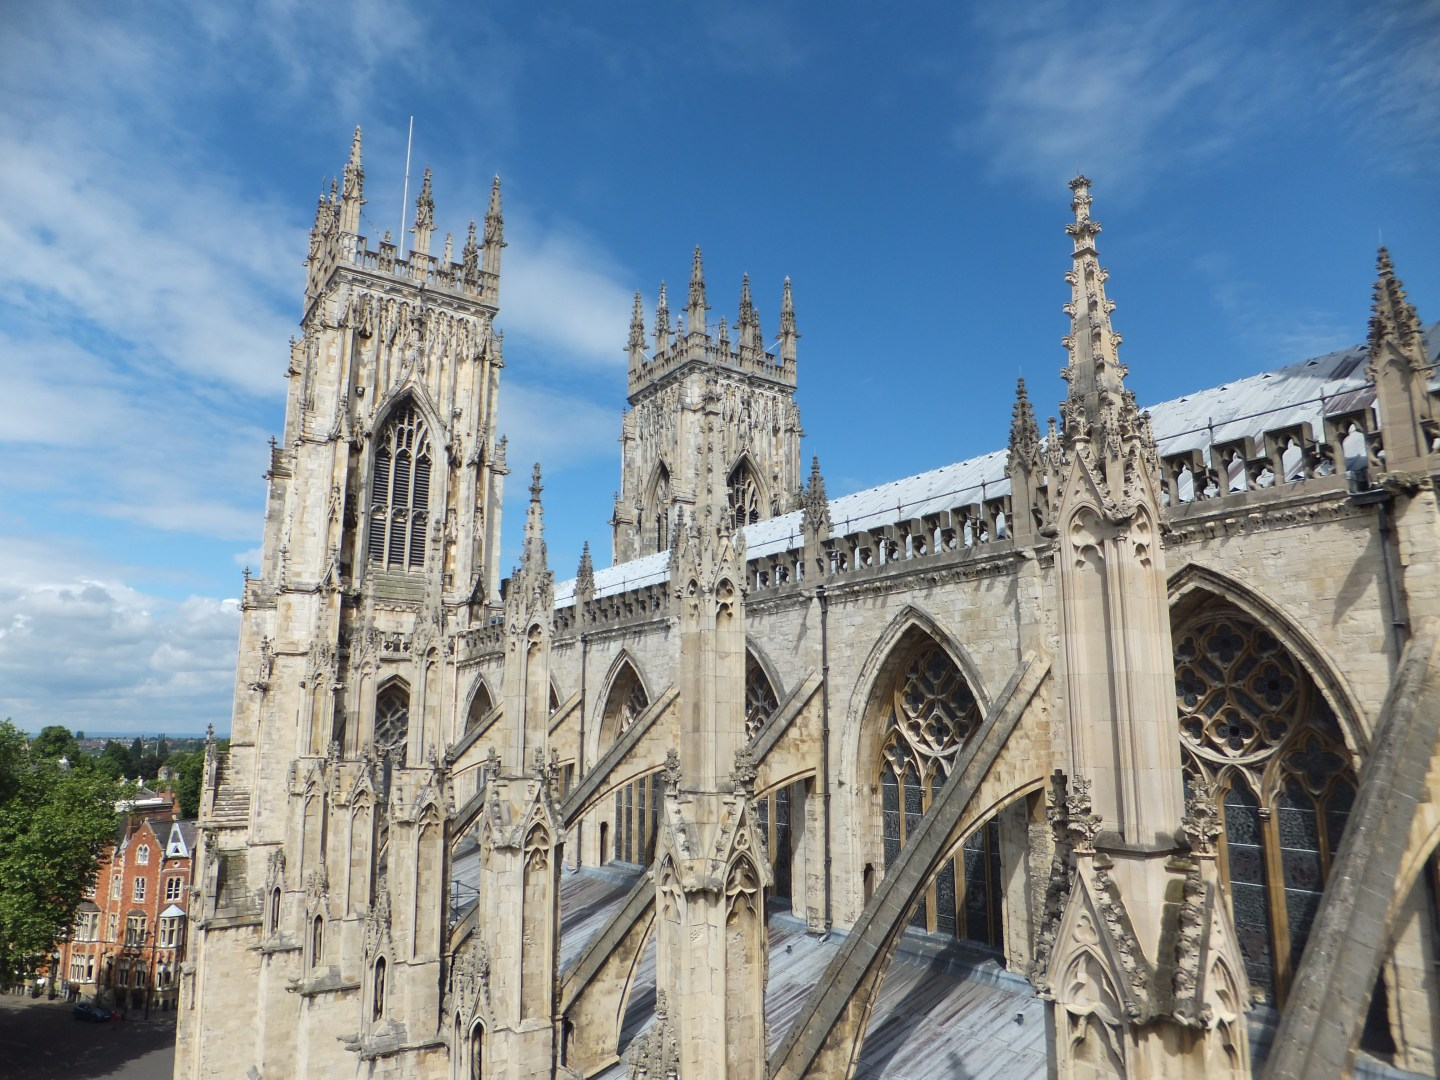 Much ado about the Minster